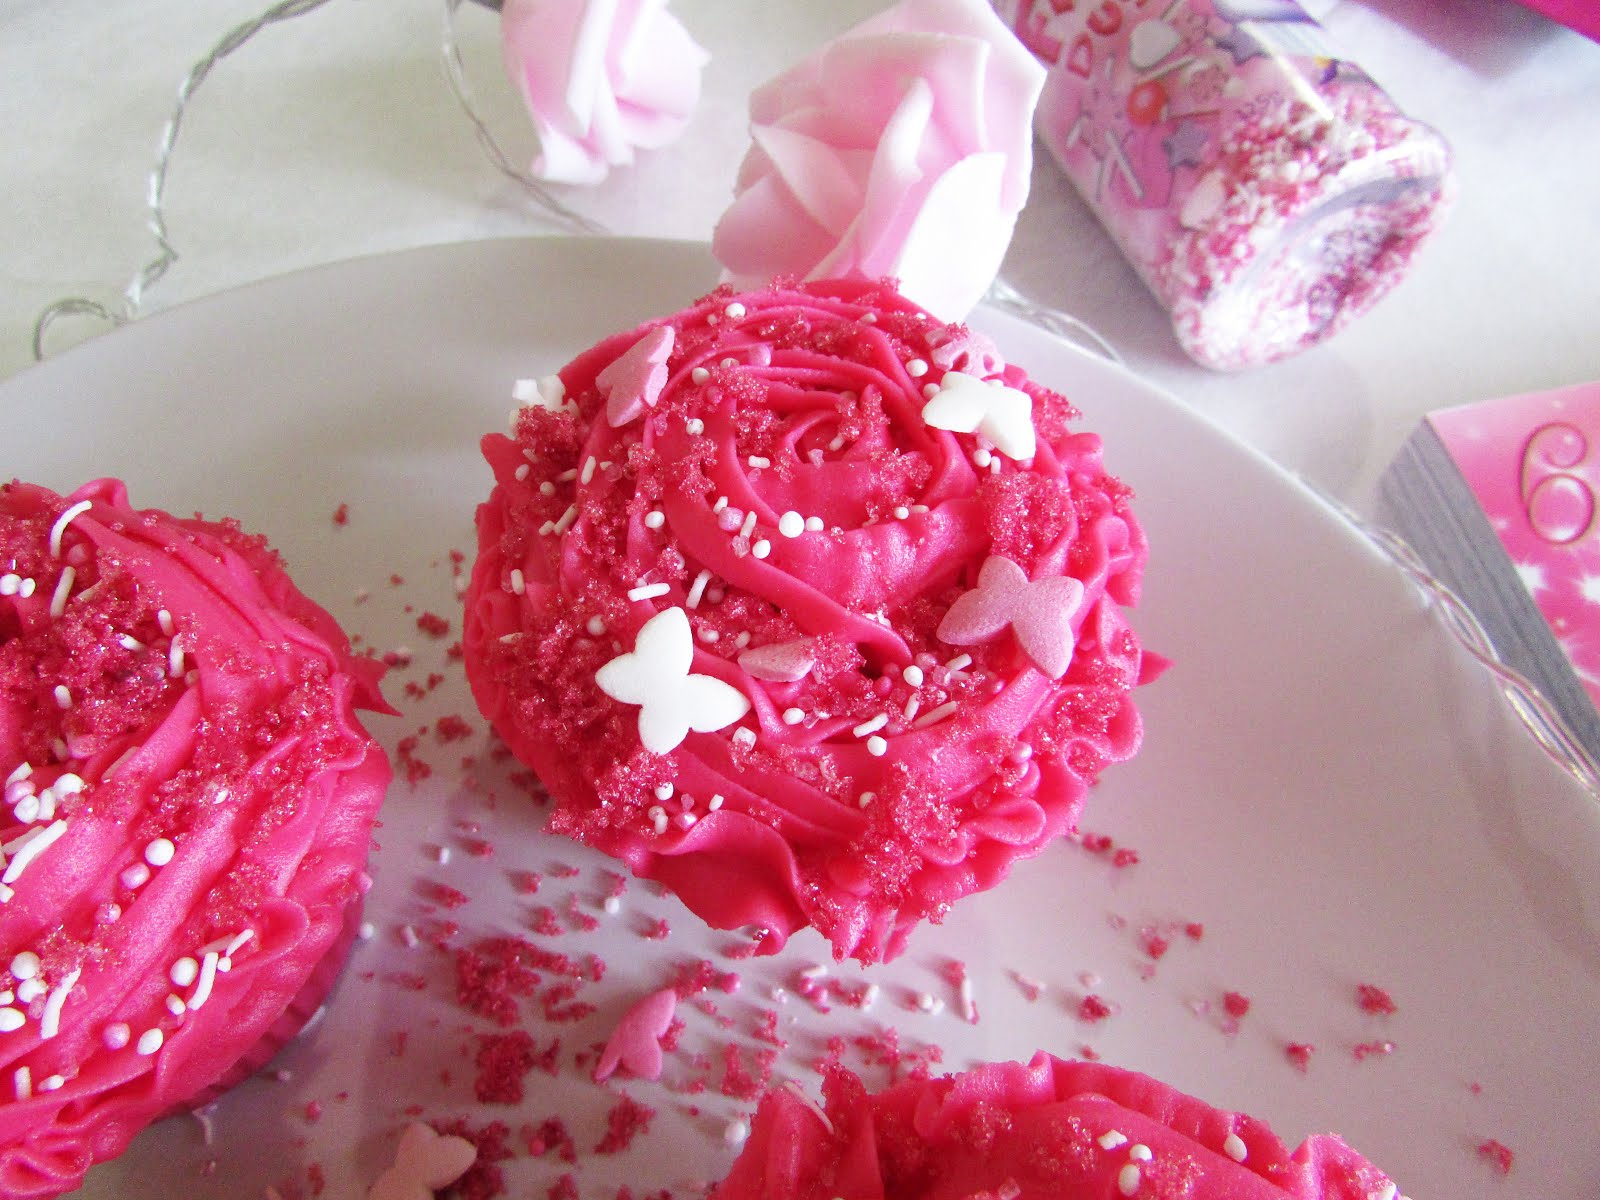 Pink Sugar Heart Attack: Fairy Floss-Filled Cupcakes with Bubblegum Icing